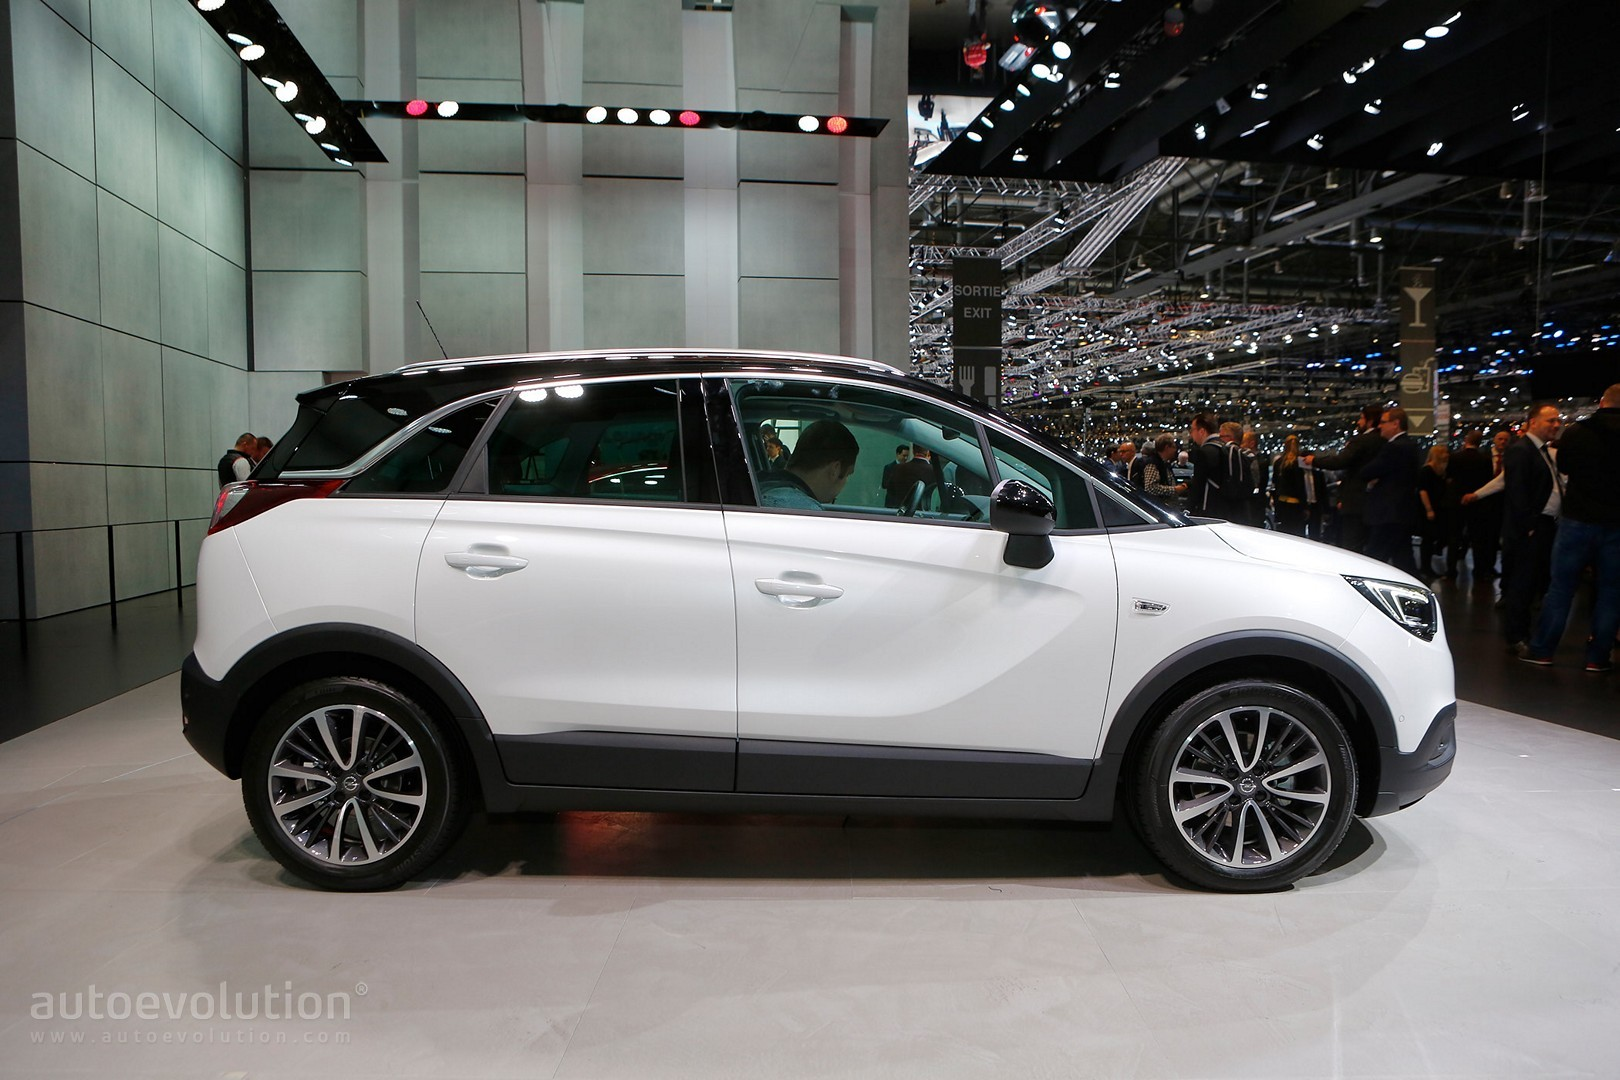 Opel Crossland X Is Now A Peugeot In Geneva Autoevolution